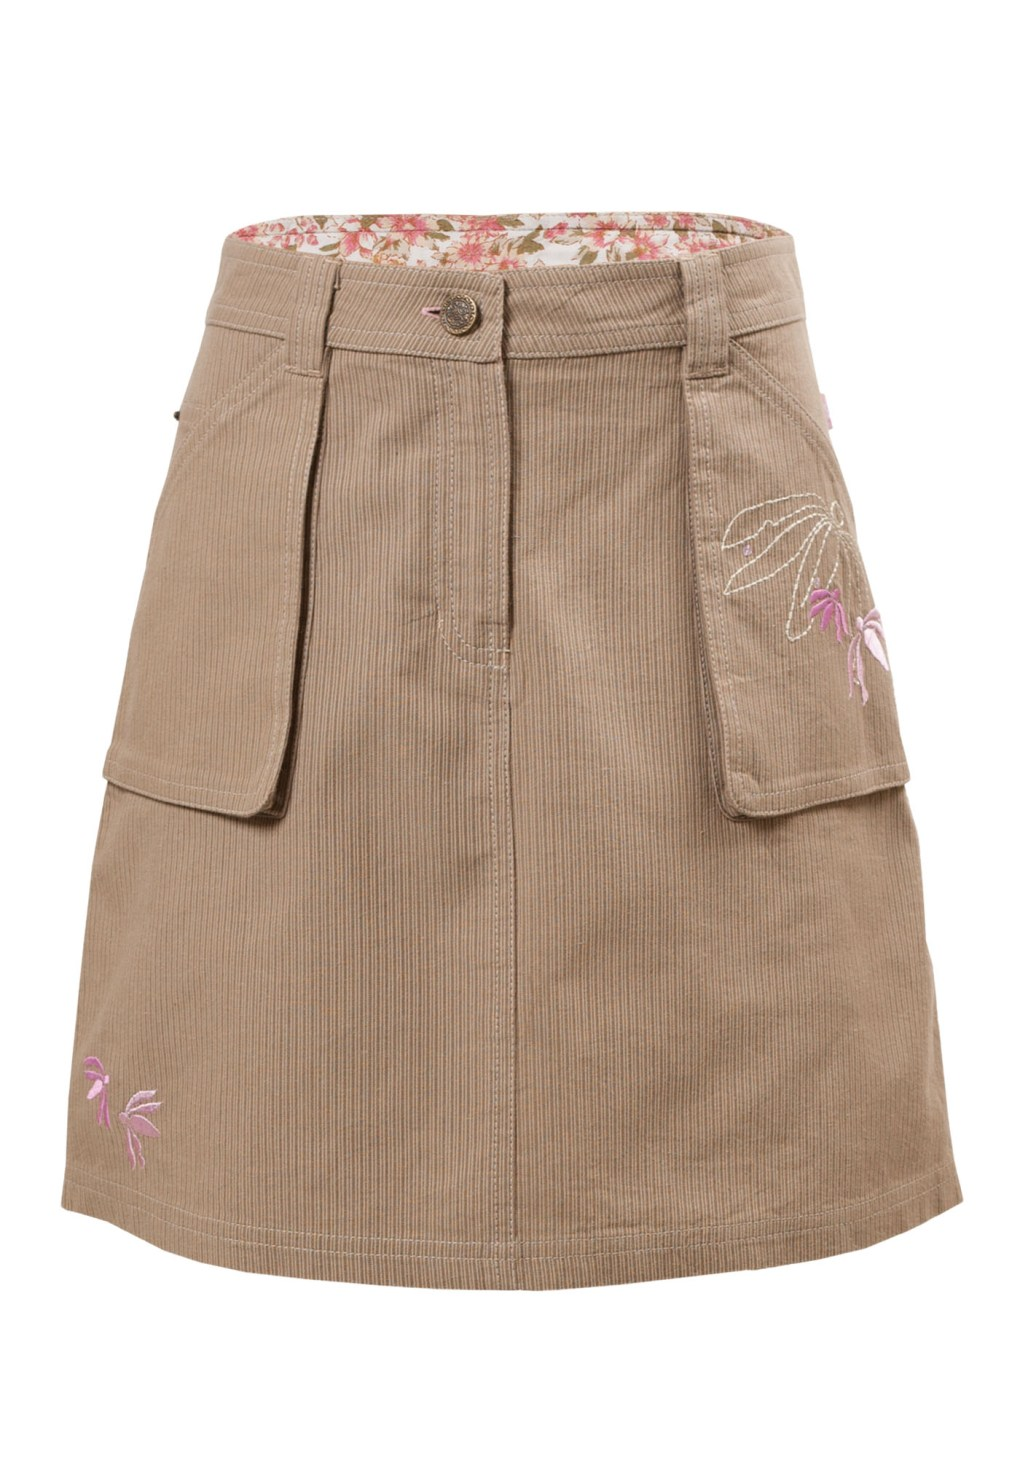 MINC Petite Autumn Fun Girls Embroidered Short Skirt in Beige Corduroy